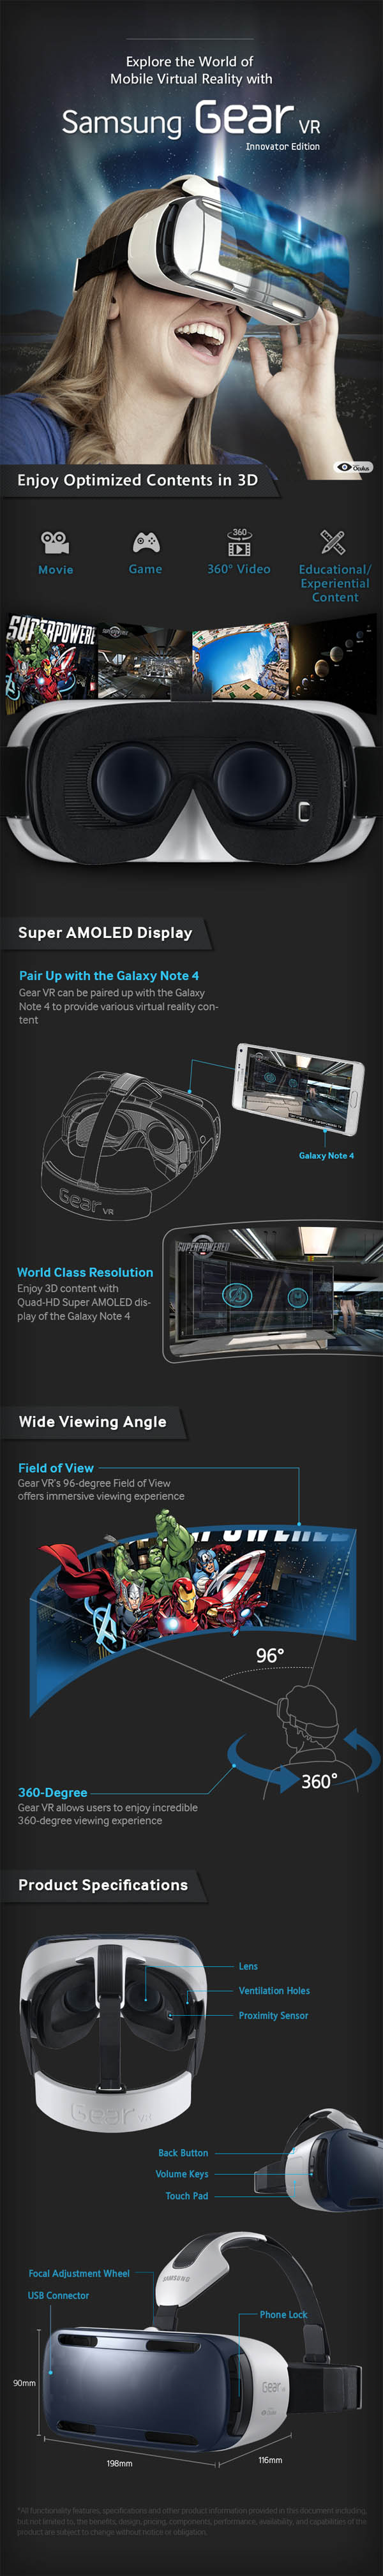 Gear VR infographic